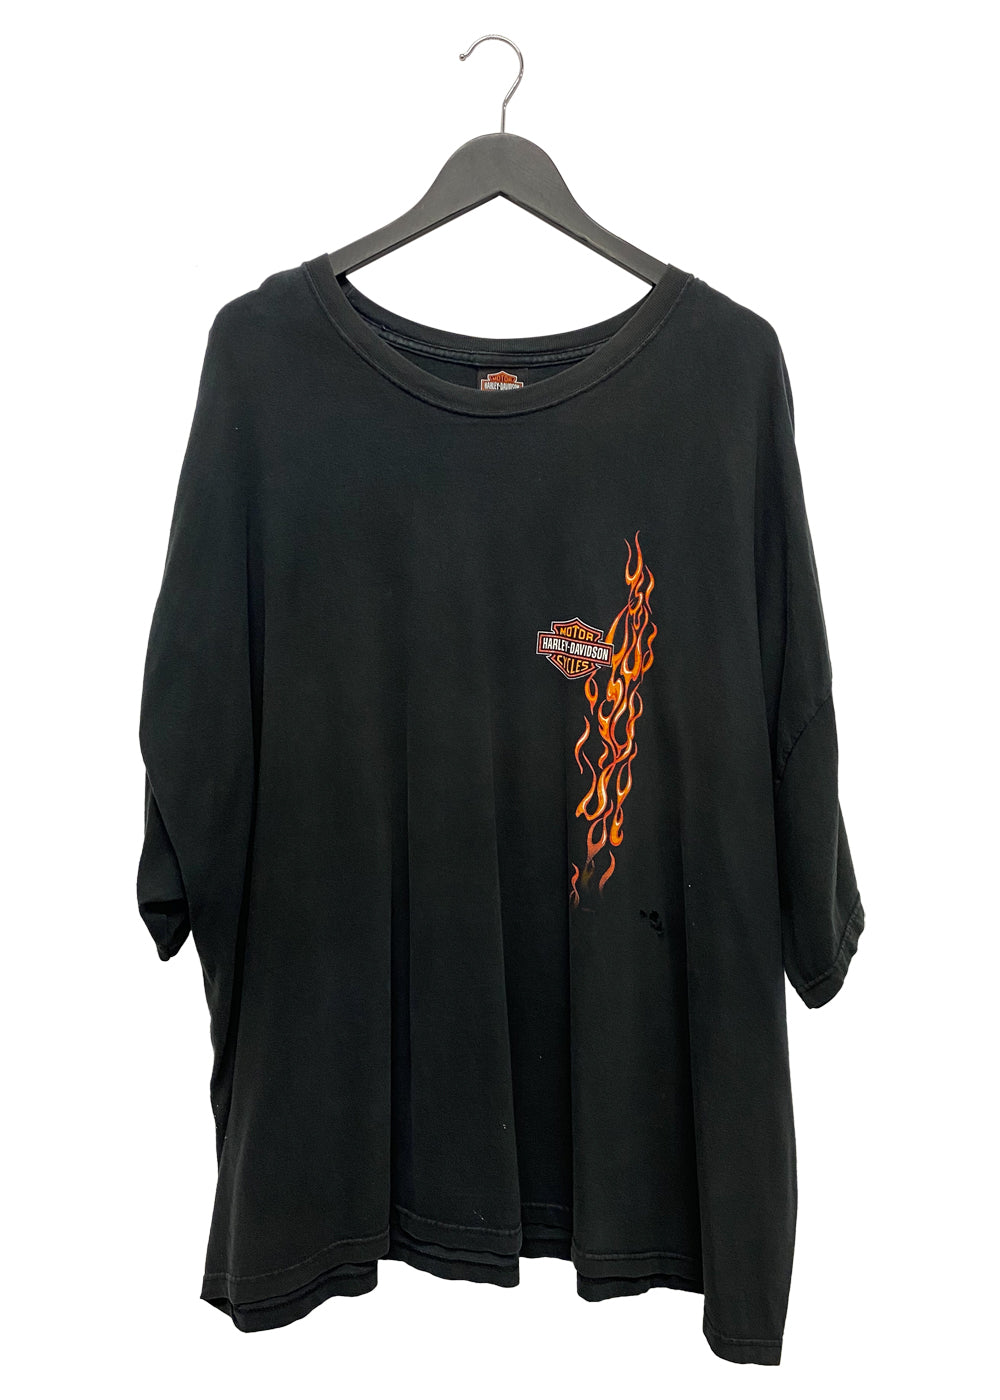 HARLEY DAVIDSON 'CHICAGO' COLLECTOR TEE